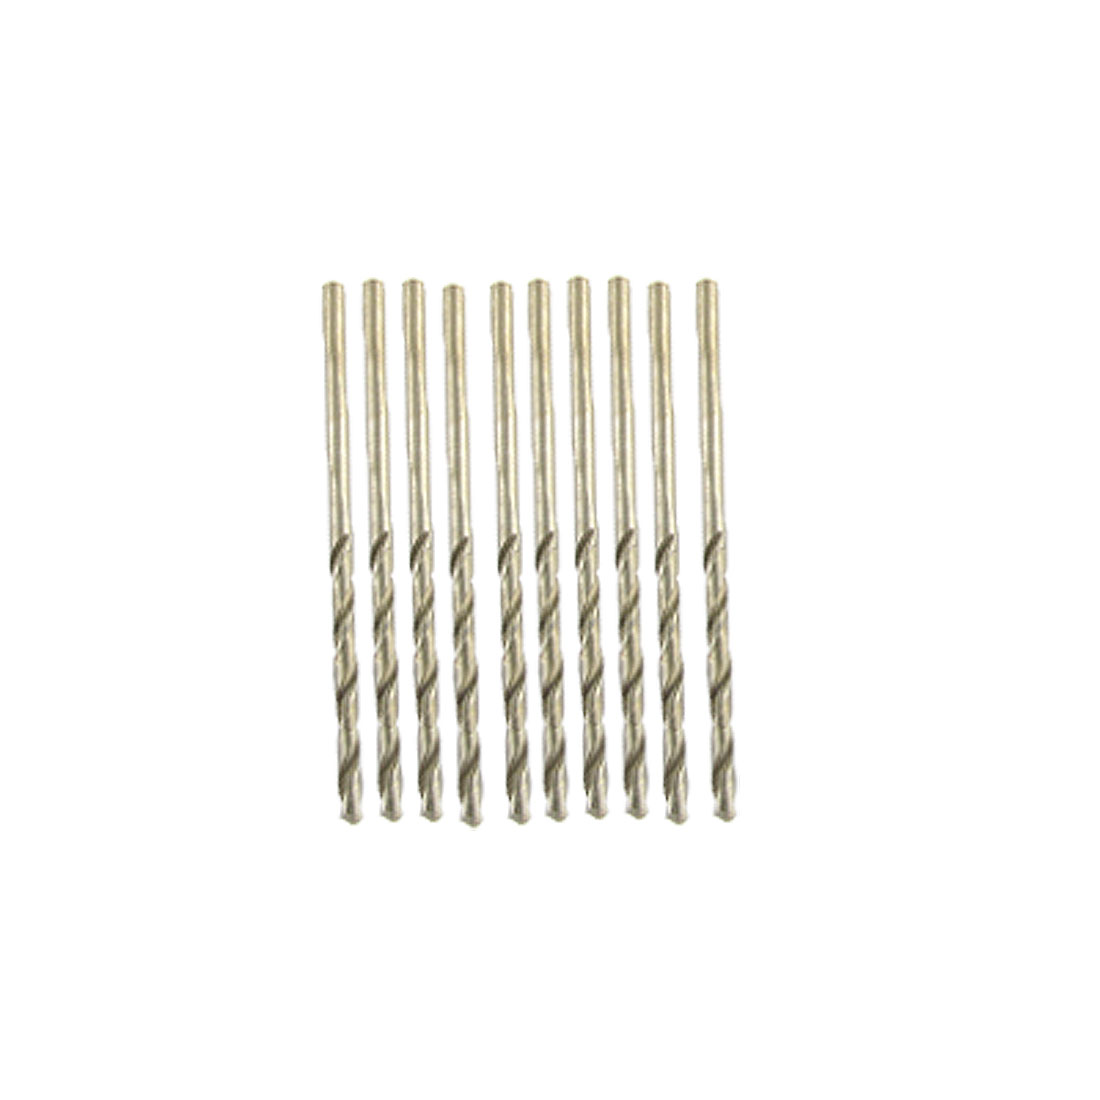 2mm Diameter Dull Edged Metal Twist Drill Bit 10PCS